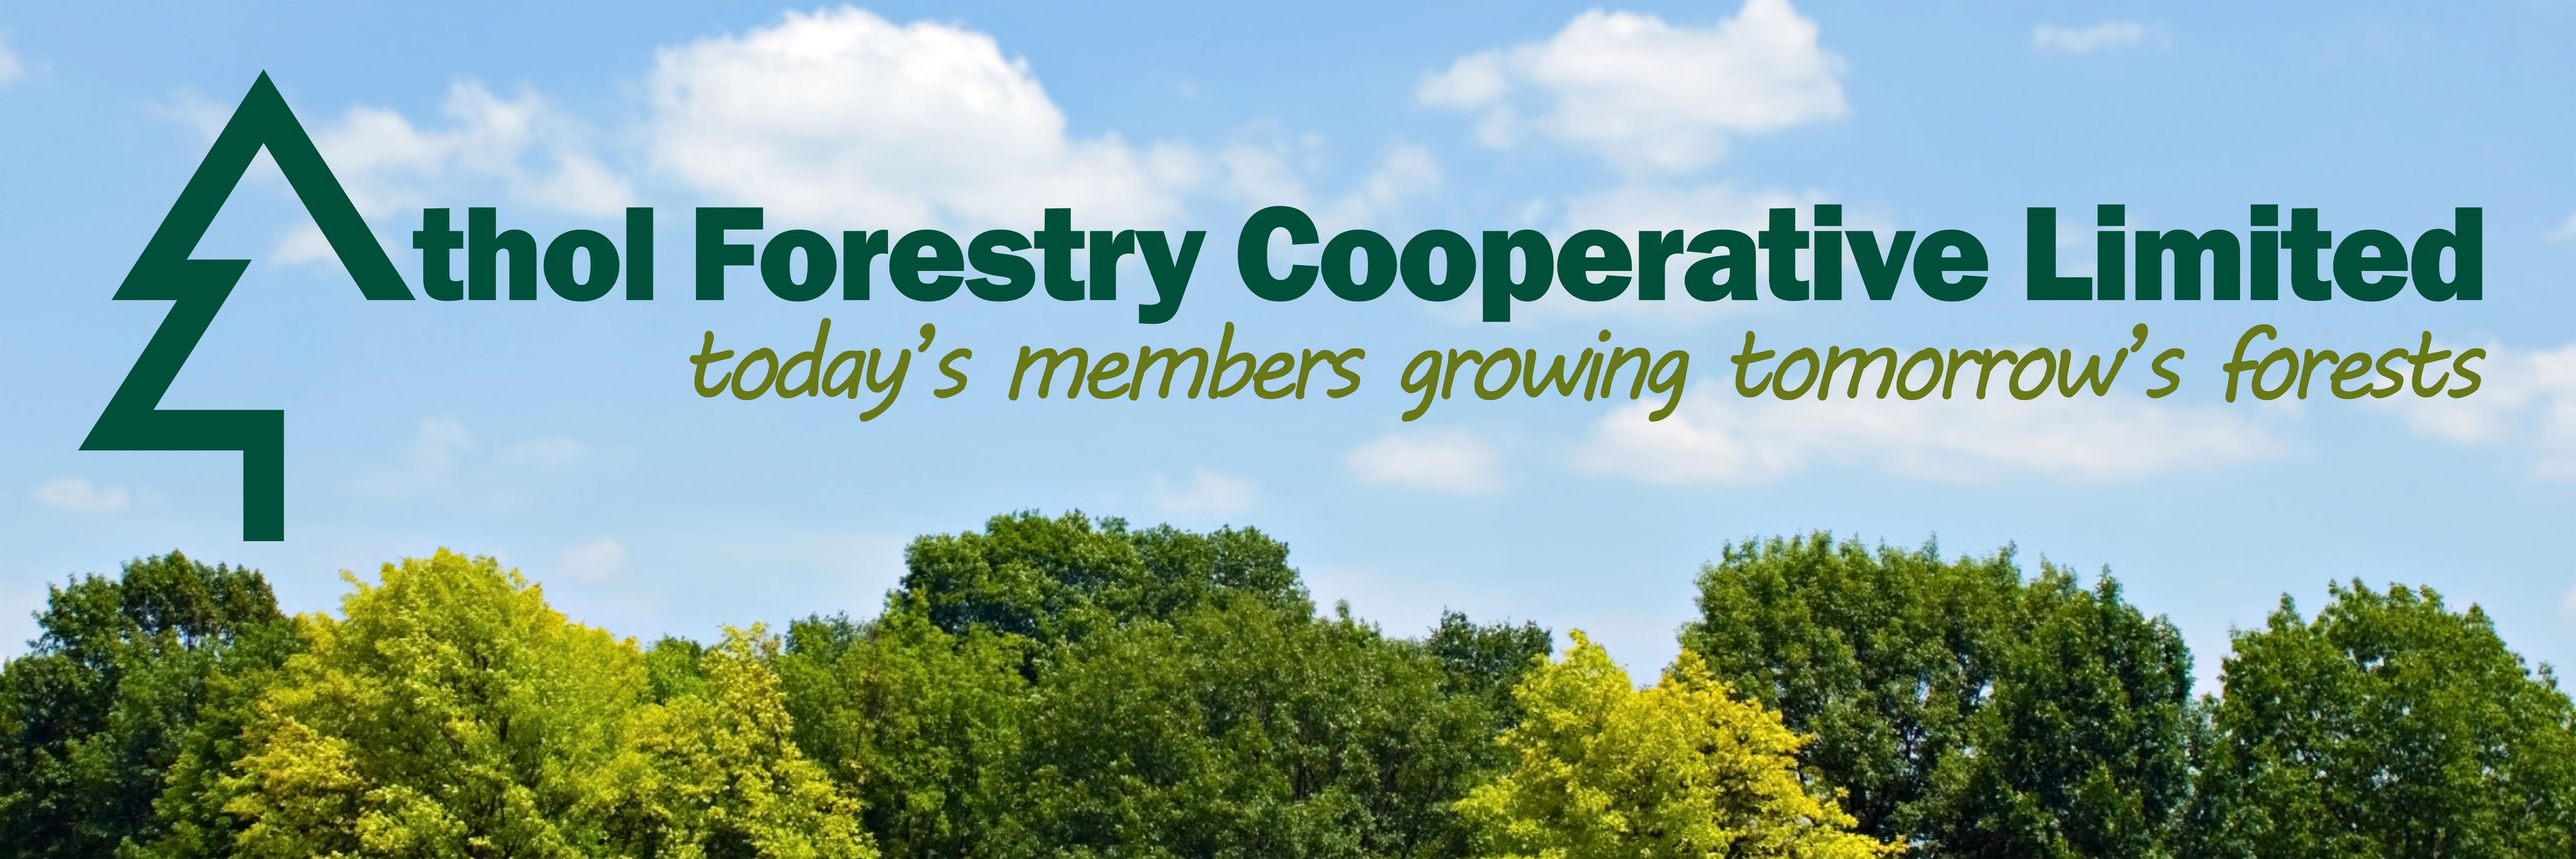 Athol Forestry Cooperative Limited